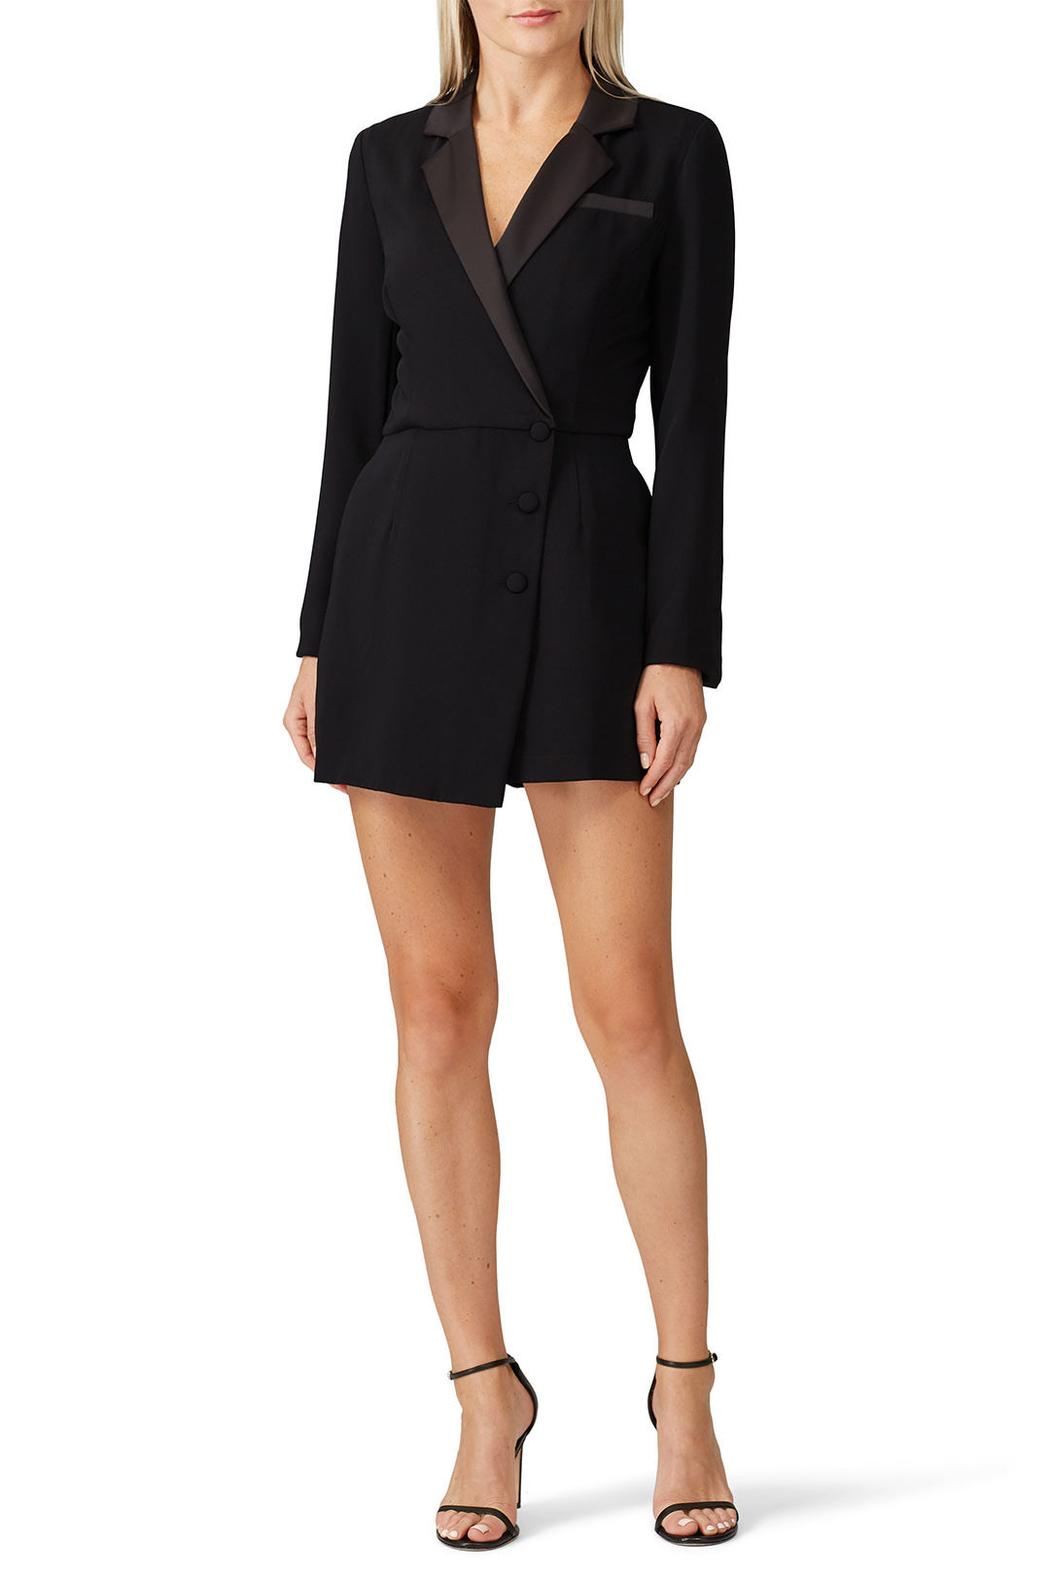 Adelyn Rae Grayson Suit Romper - Main Image